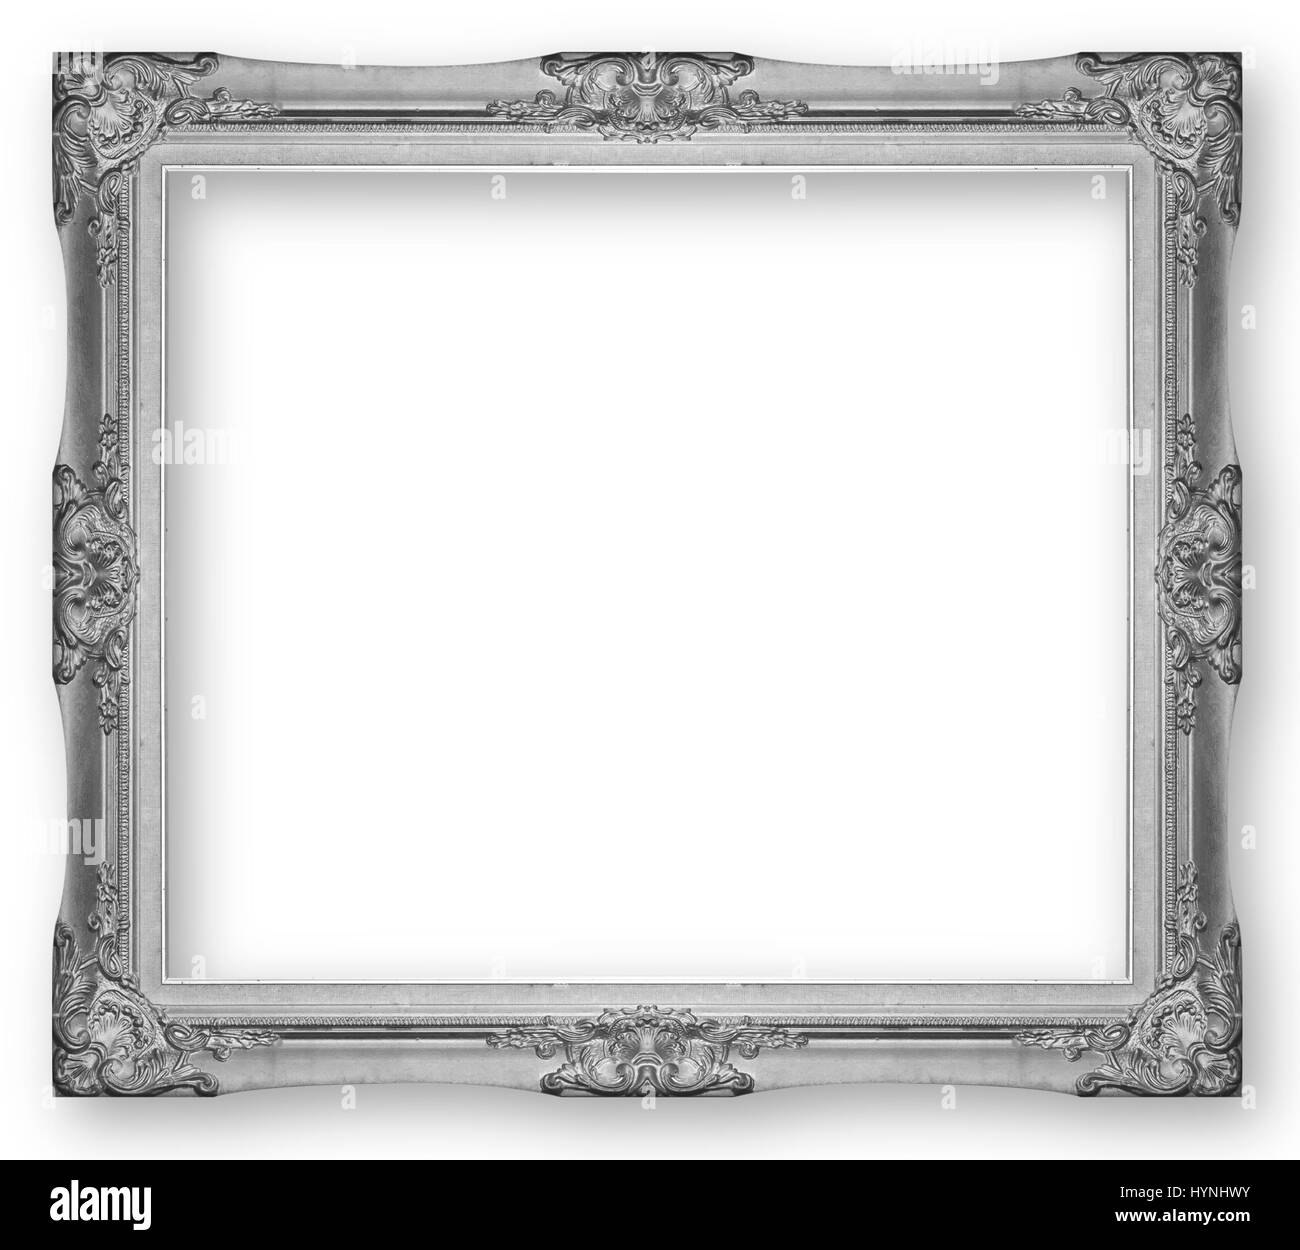 Oval Frame Antique Black and White Stock Photos & Images - Alamy